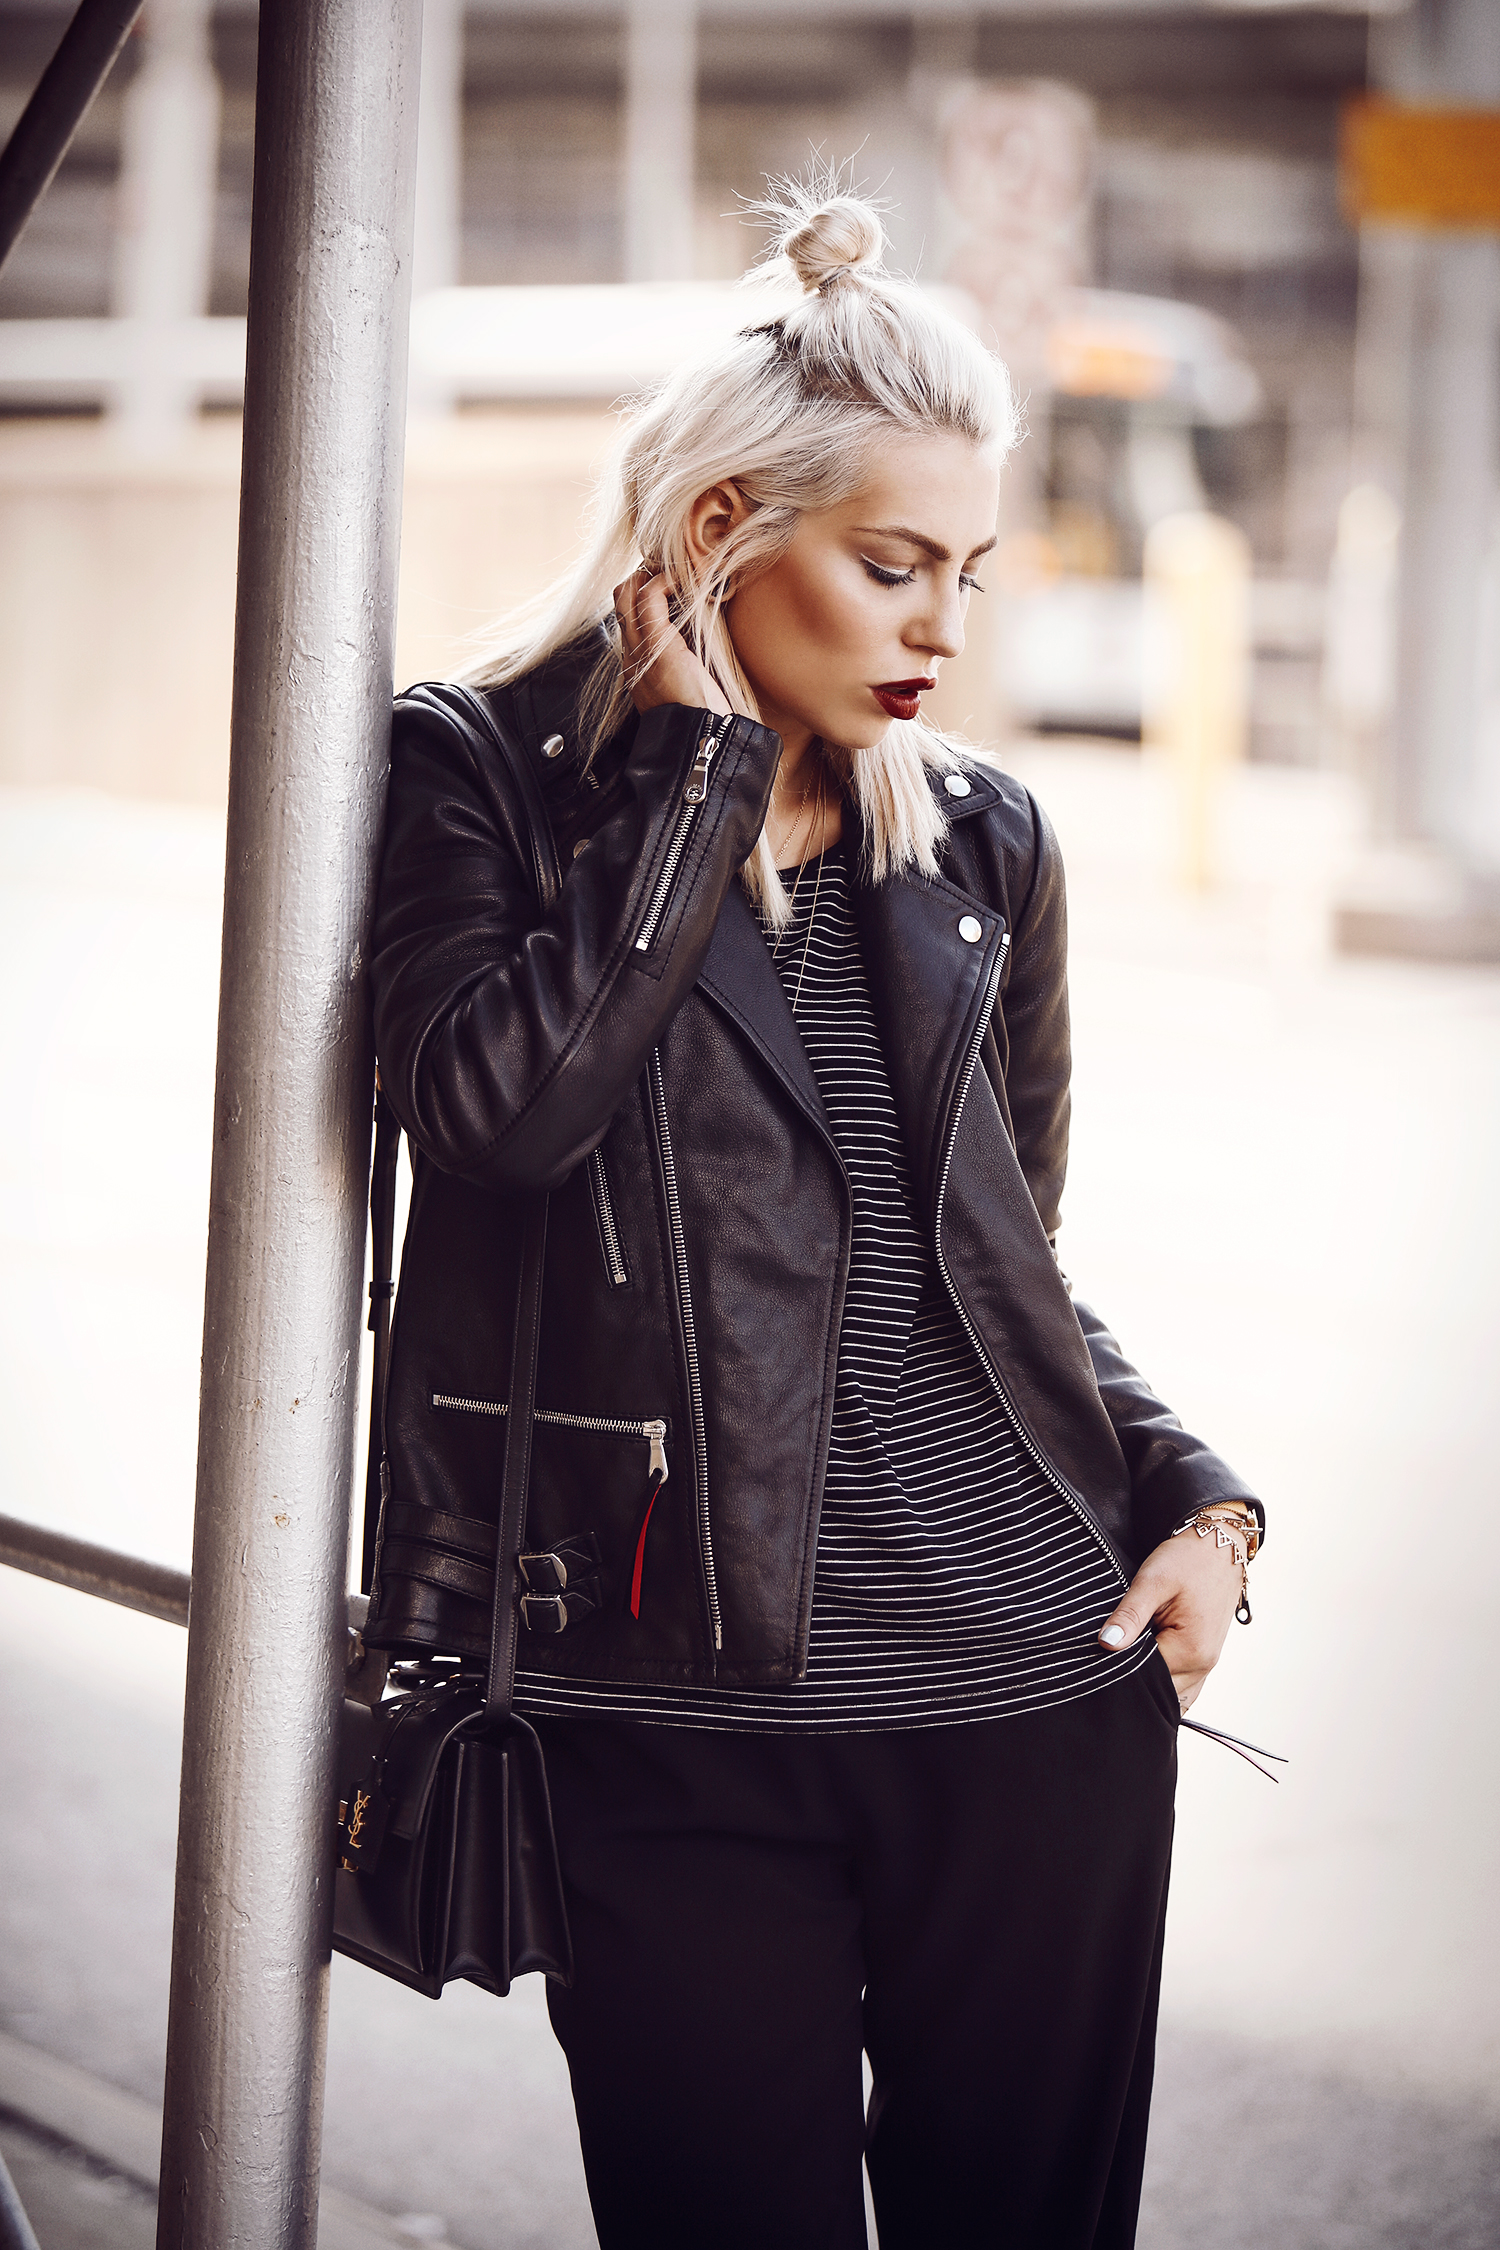 street style from New York via Masha Sedgwick | featuring the Saint Laurent High School bag and a Mulberry leather jacket